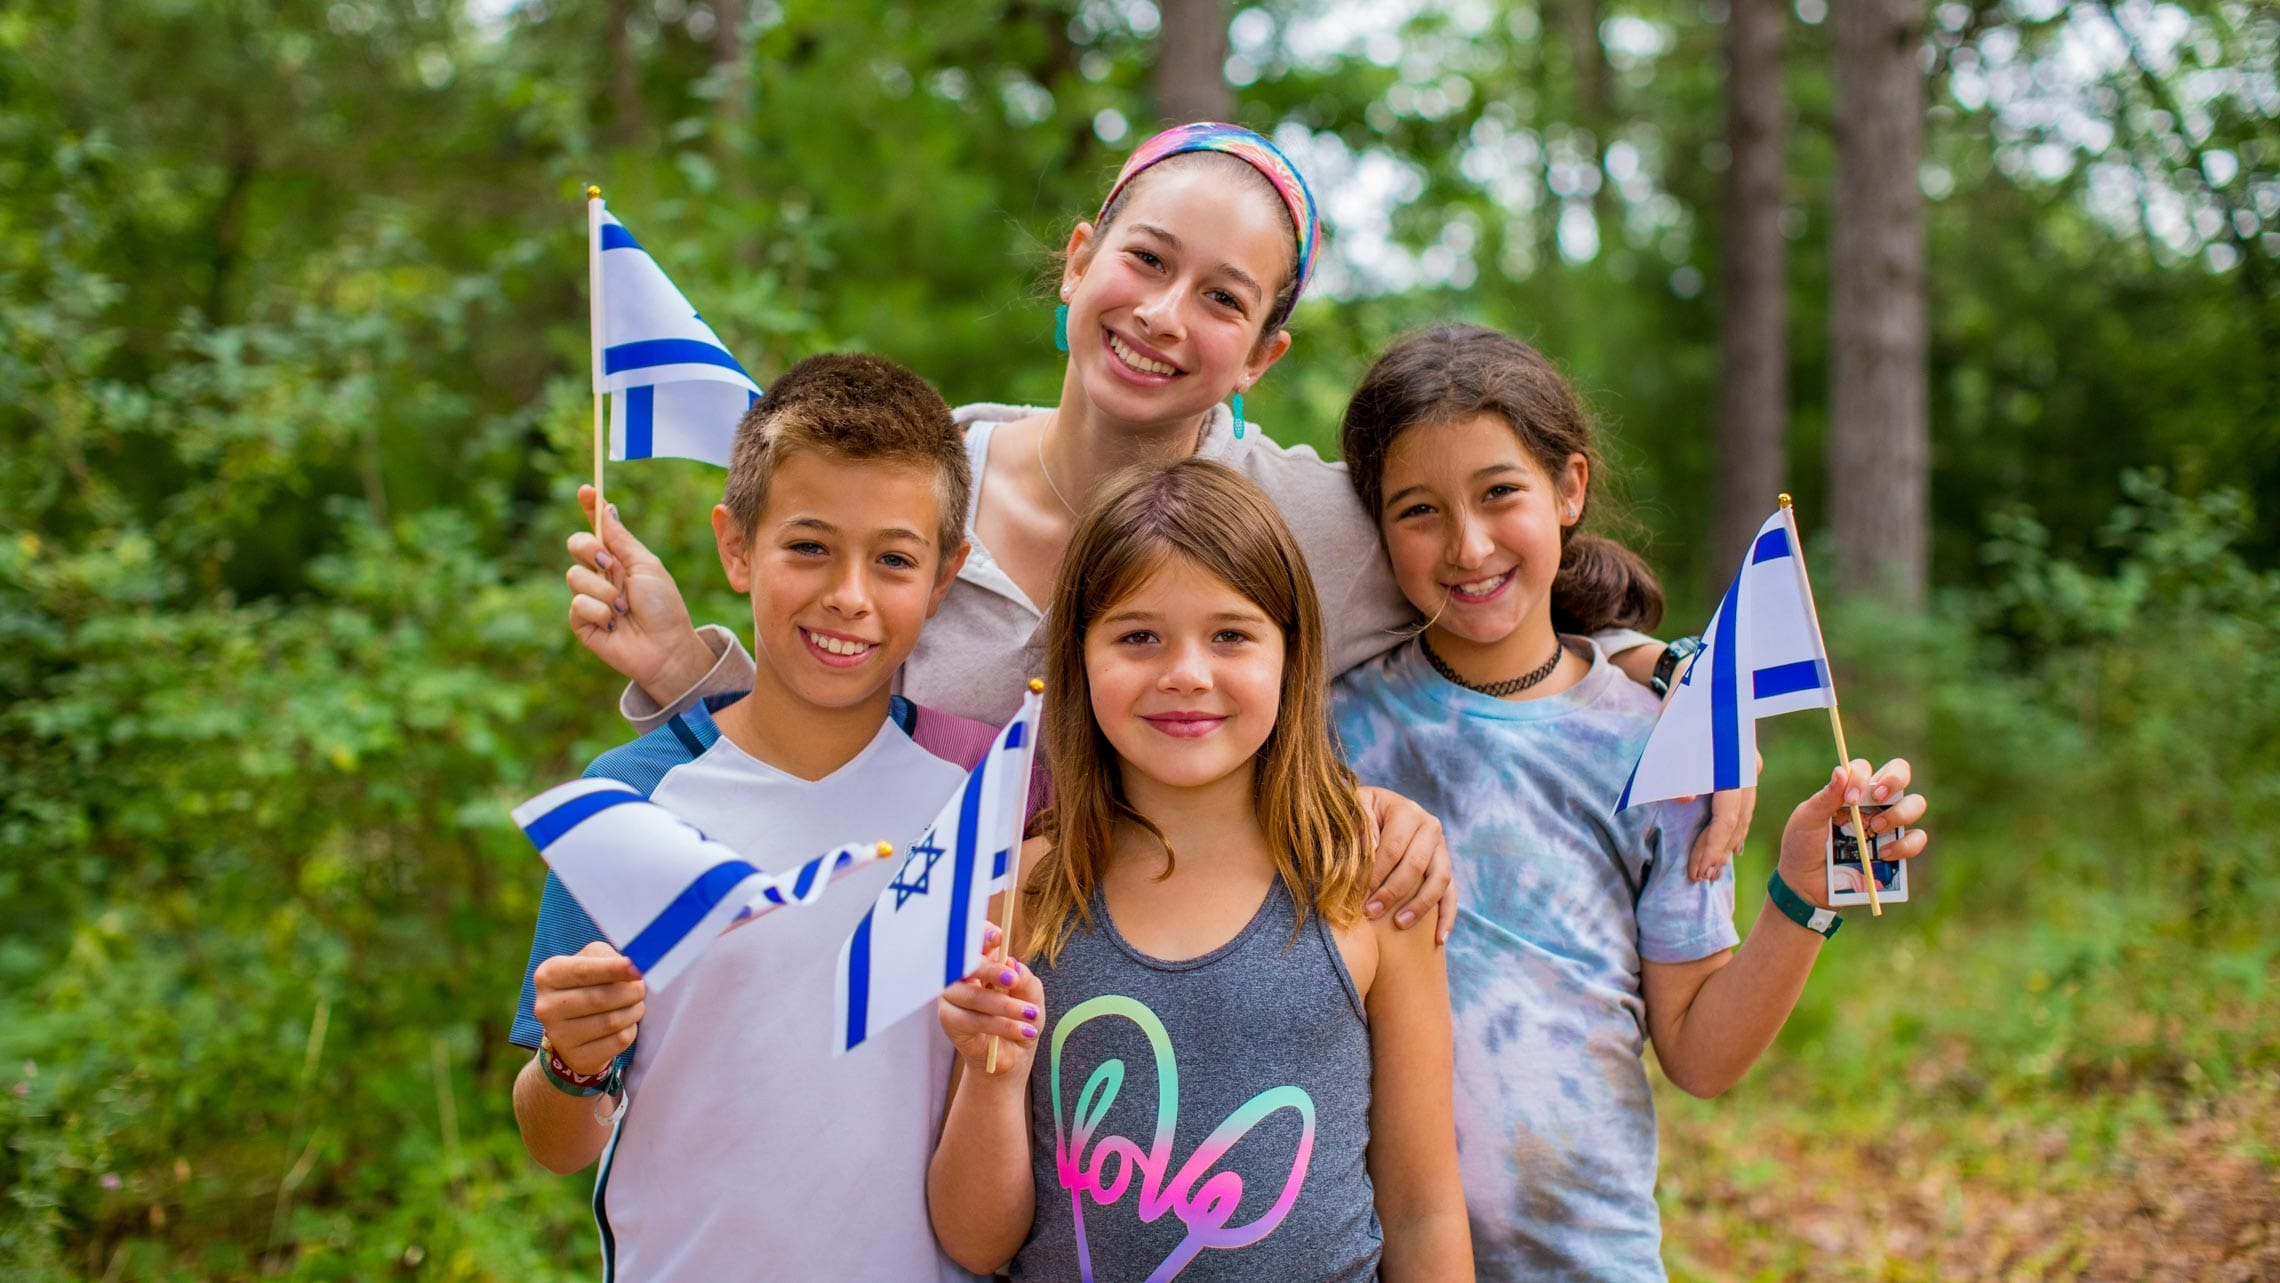 Staff and three campers with Israeli flags